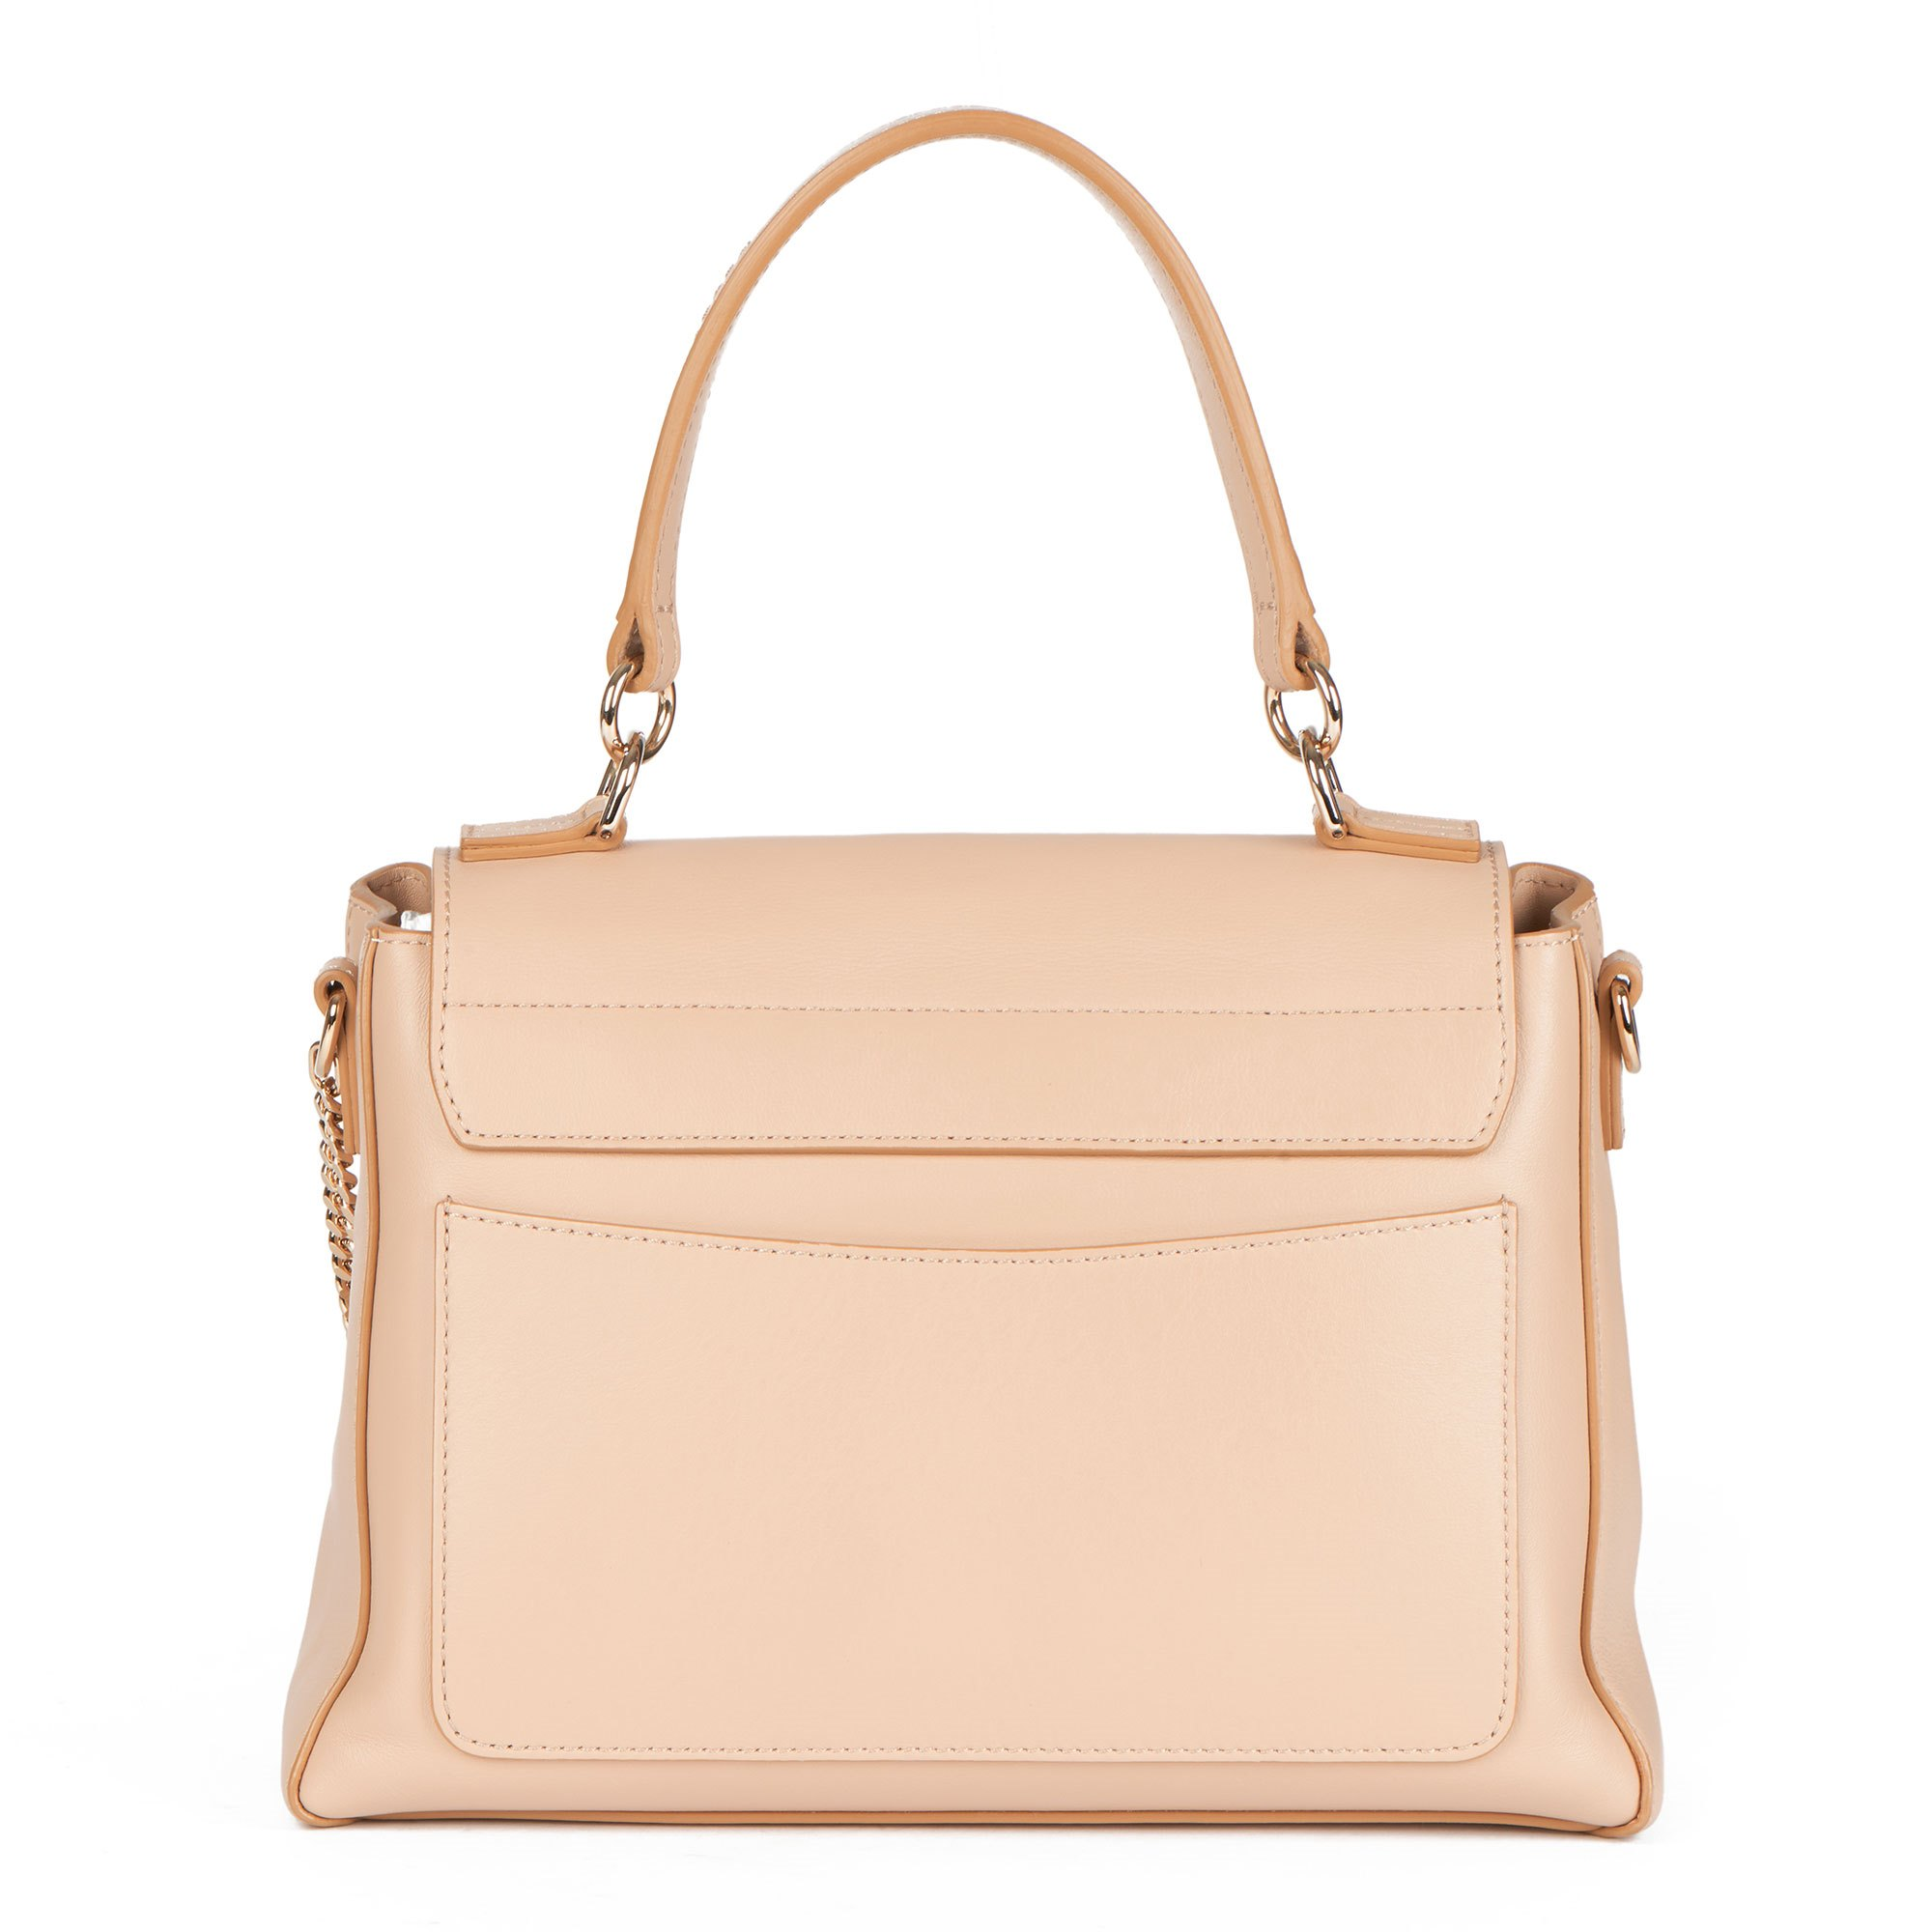 Chloé Beige Quilted Calfskin Leather & Suede Small Faye Day Bag